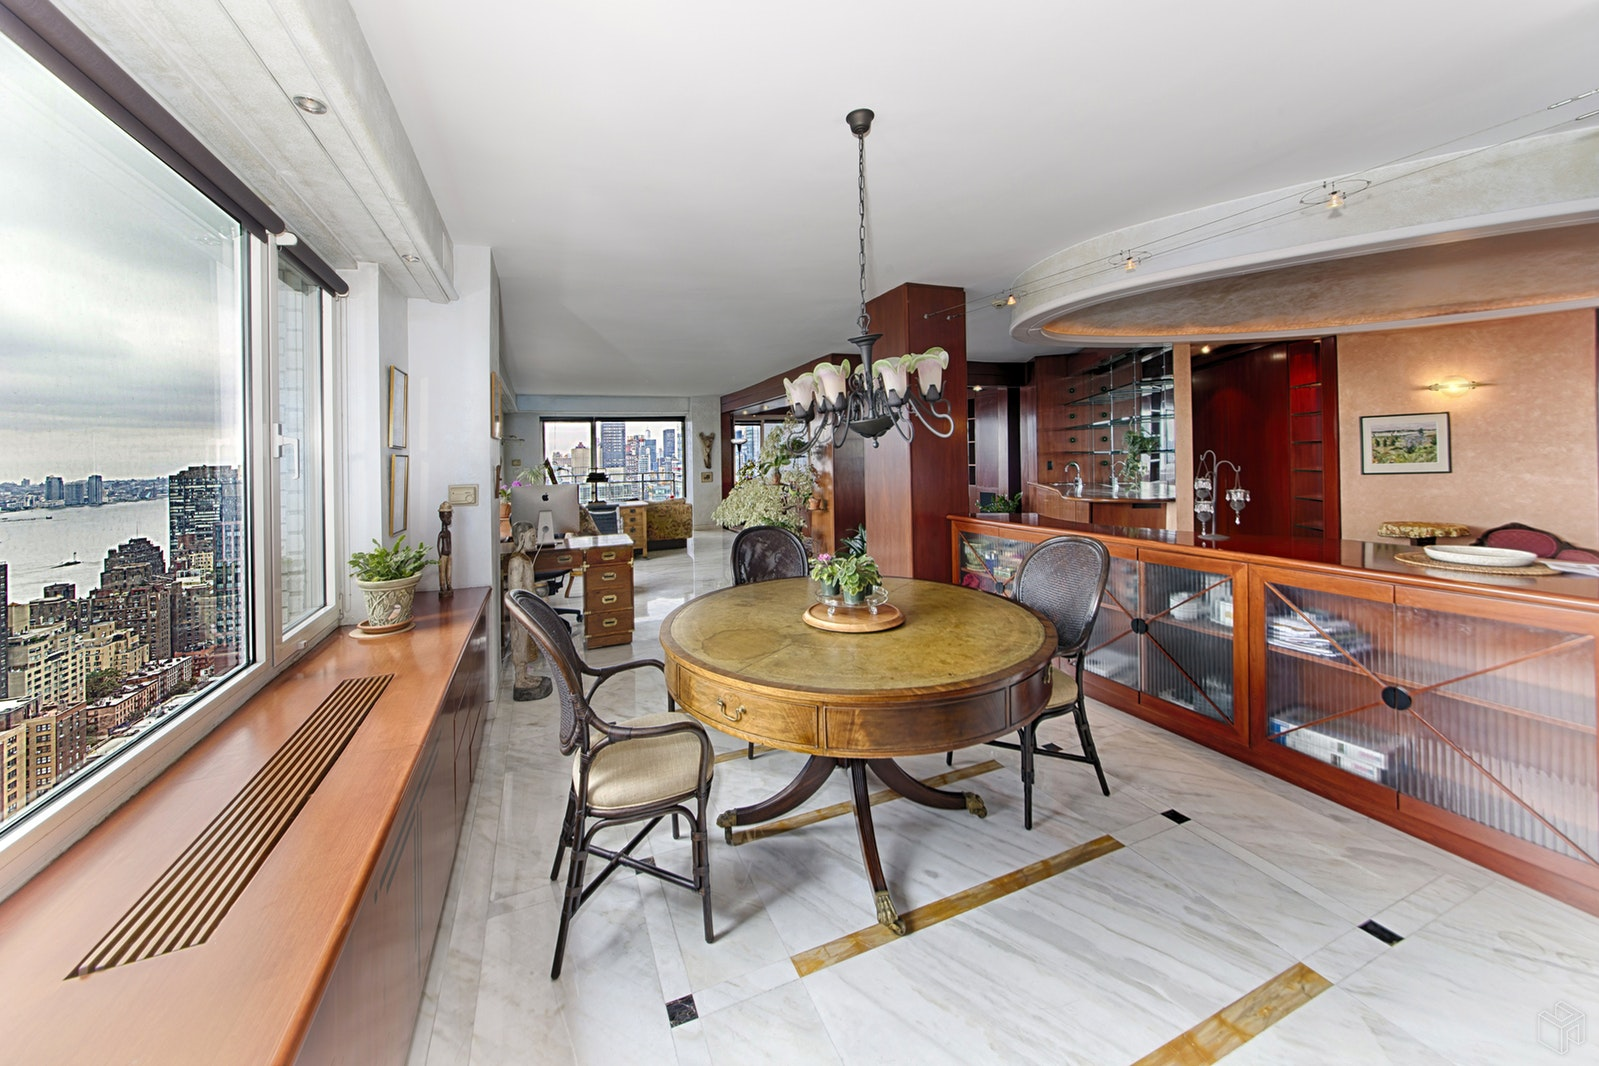 303 East 57th Street 37ab, Midtown East, NYC, 10022, $2,850,000, Property For Sale, Halstead Real Estate, Photo 2